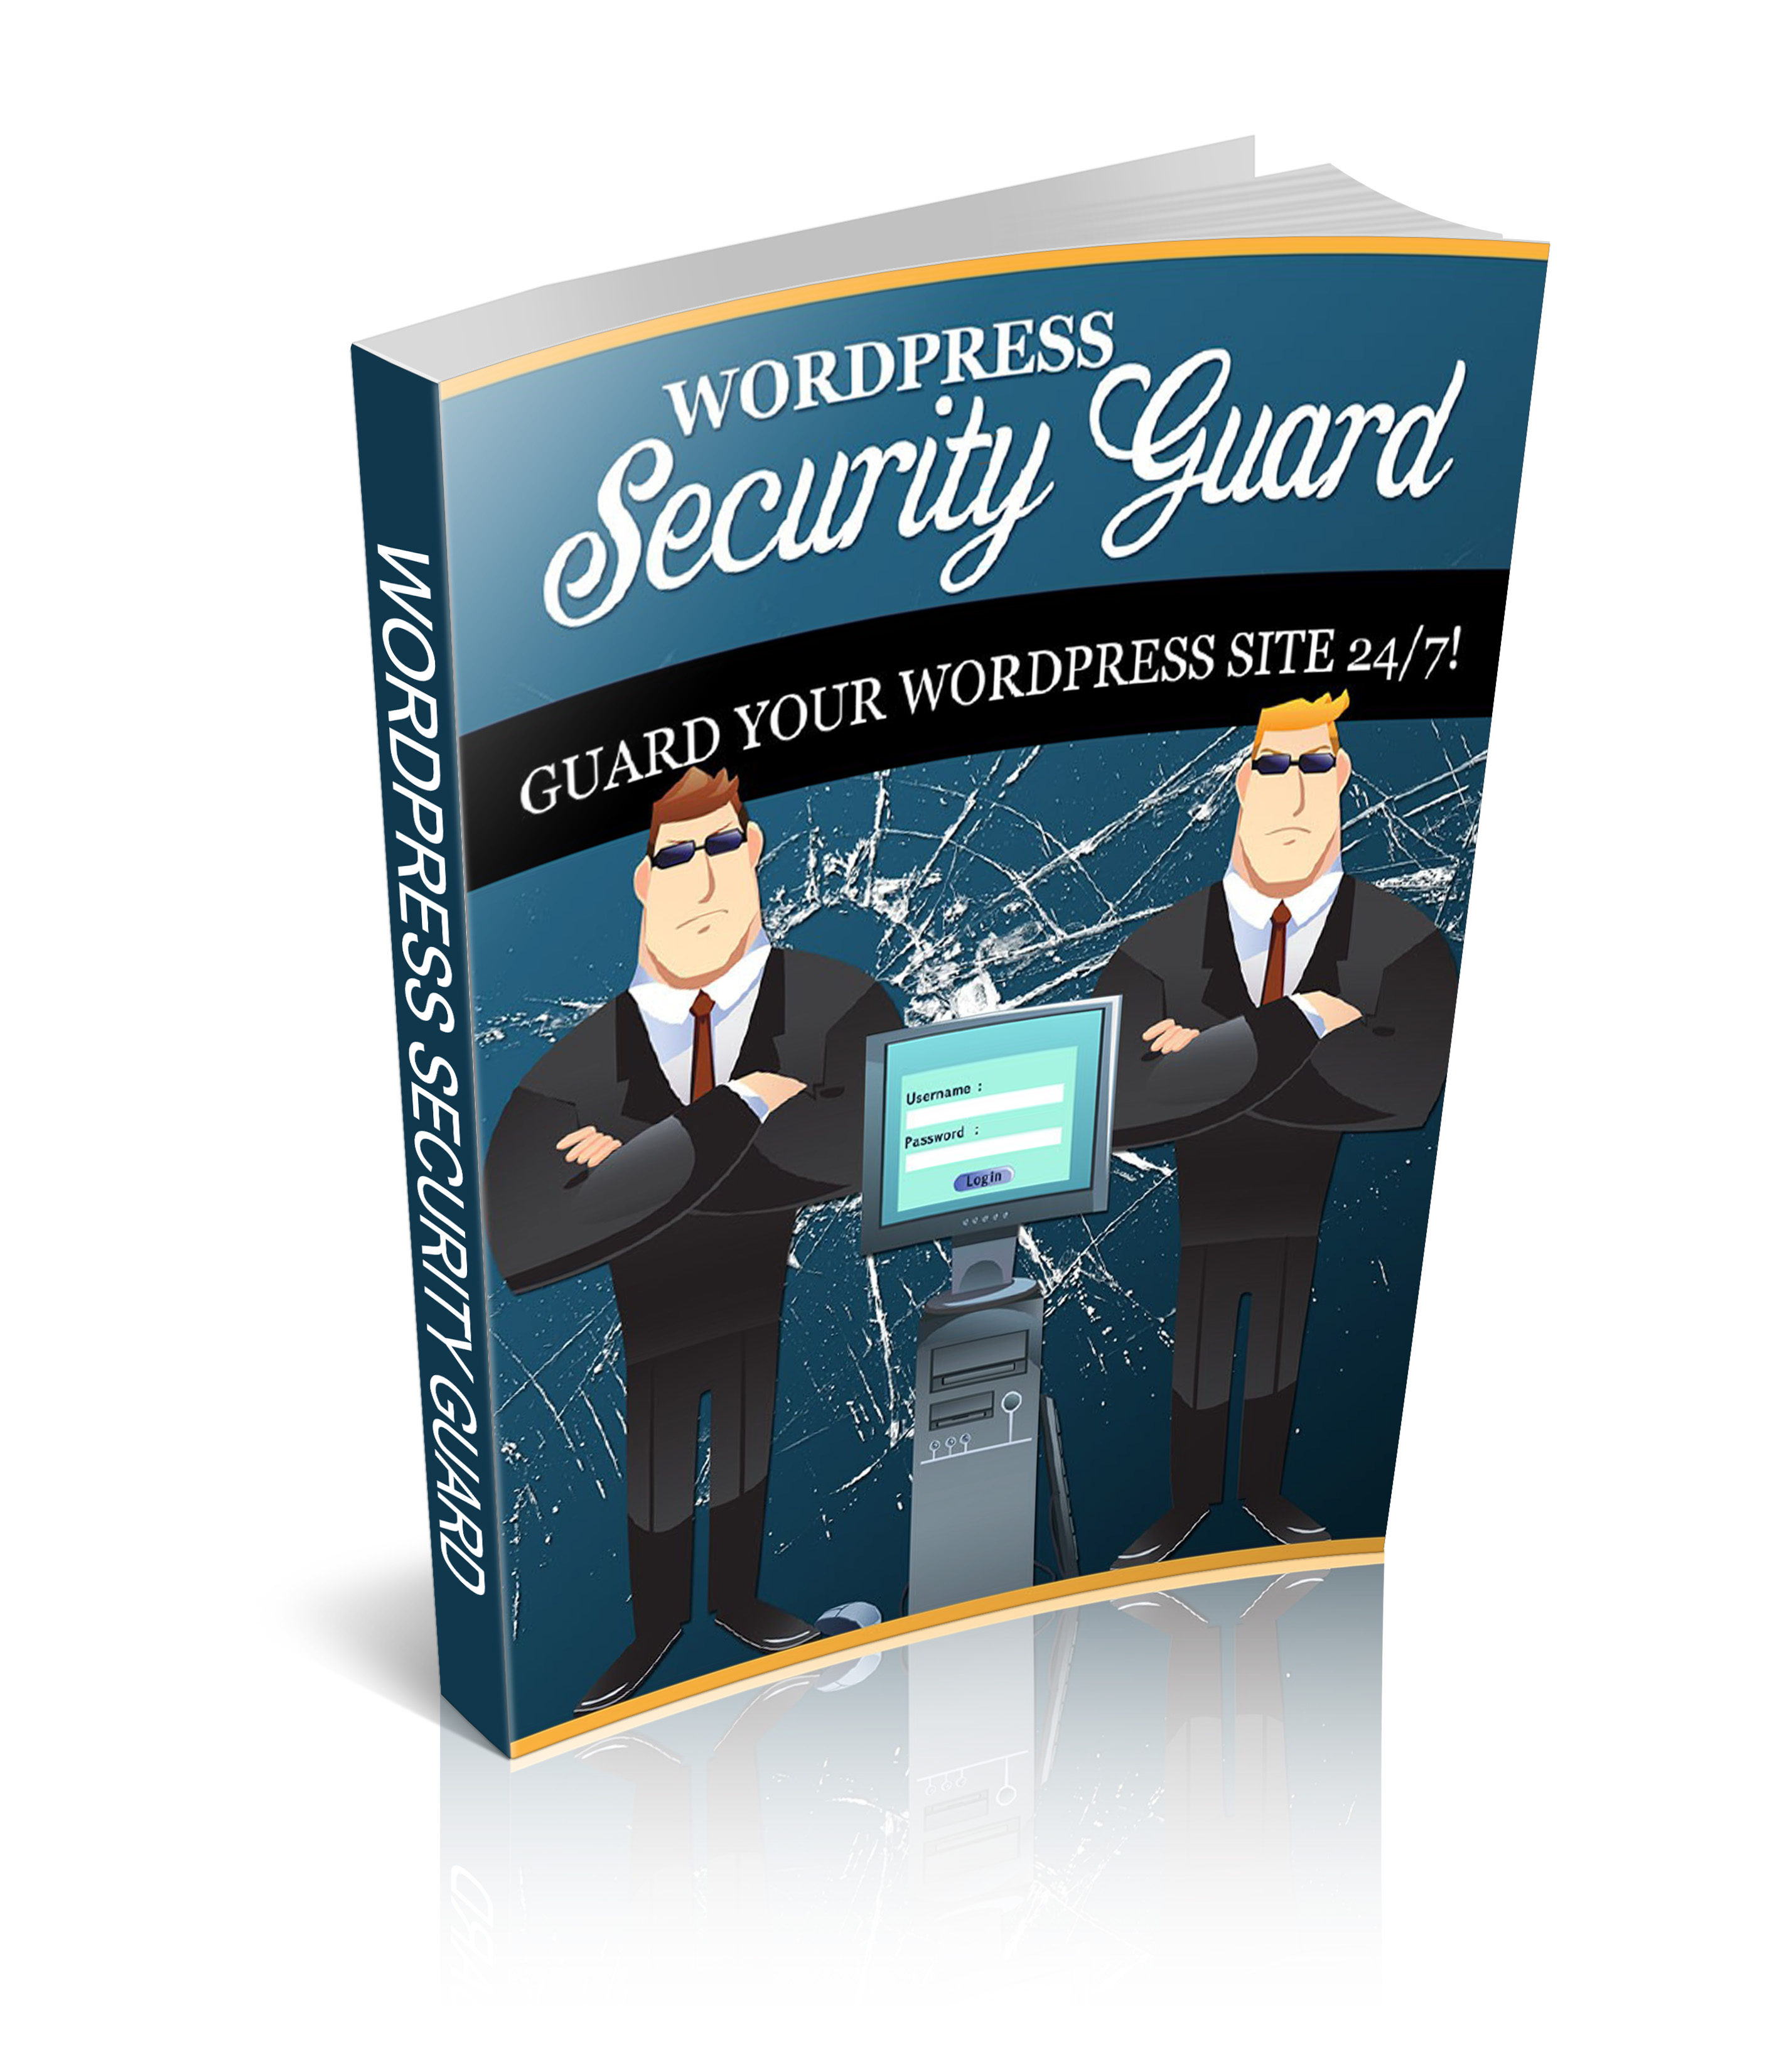 teach you how to Guard Your WordPress Website